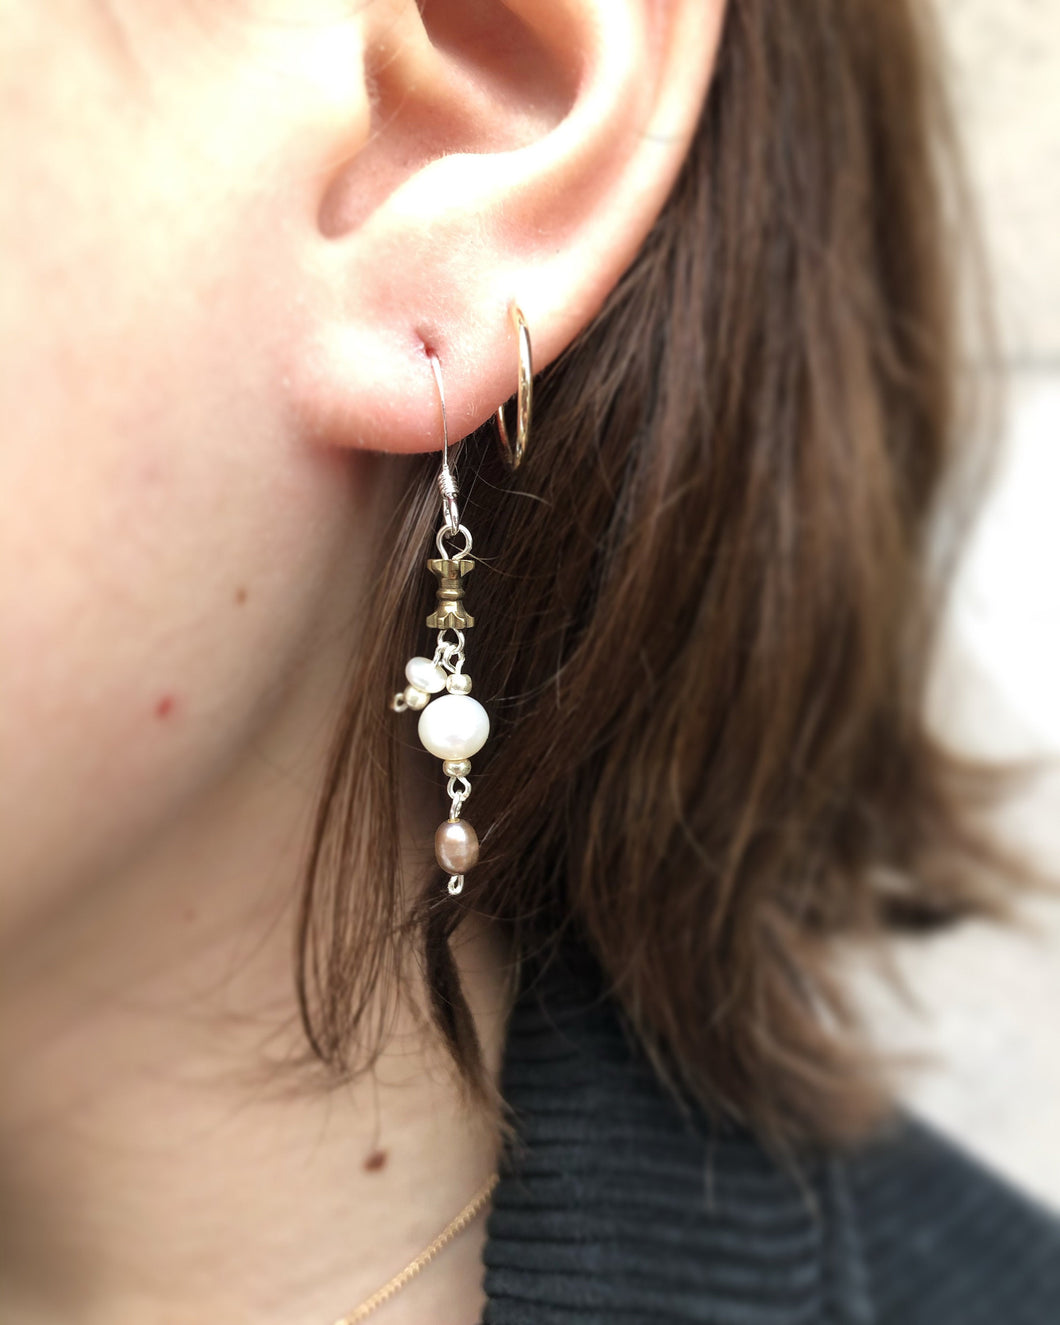 Pearl earrings with brass accents and sterling silver ear wires.